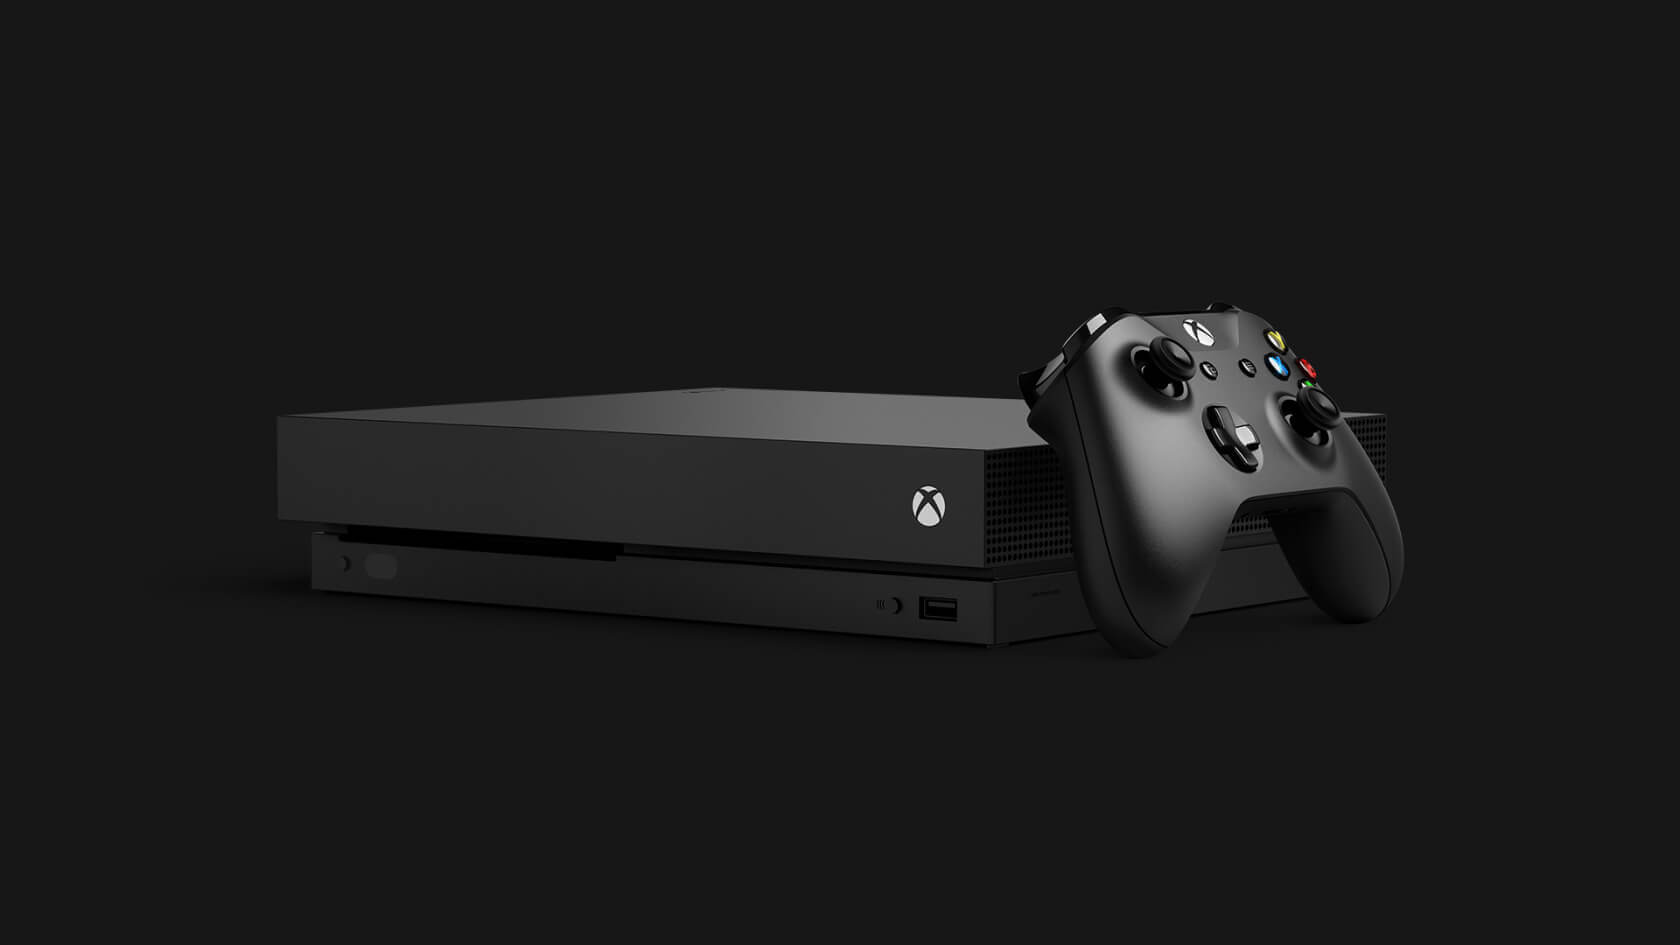 Some Xbox One X consoles becoming unresponsive